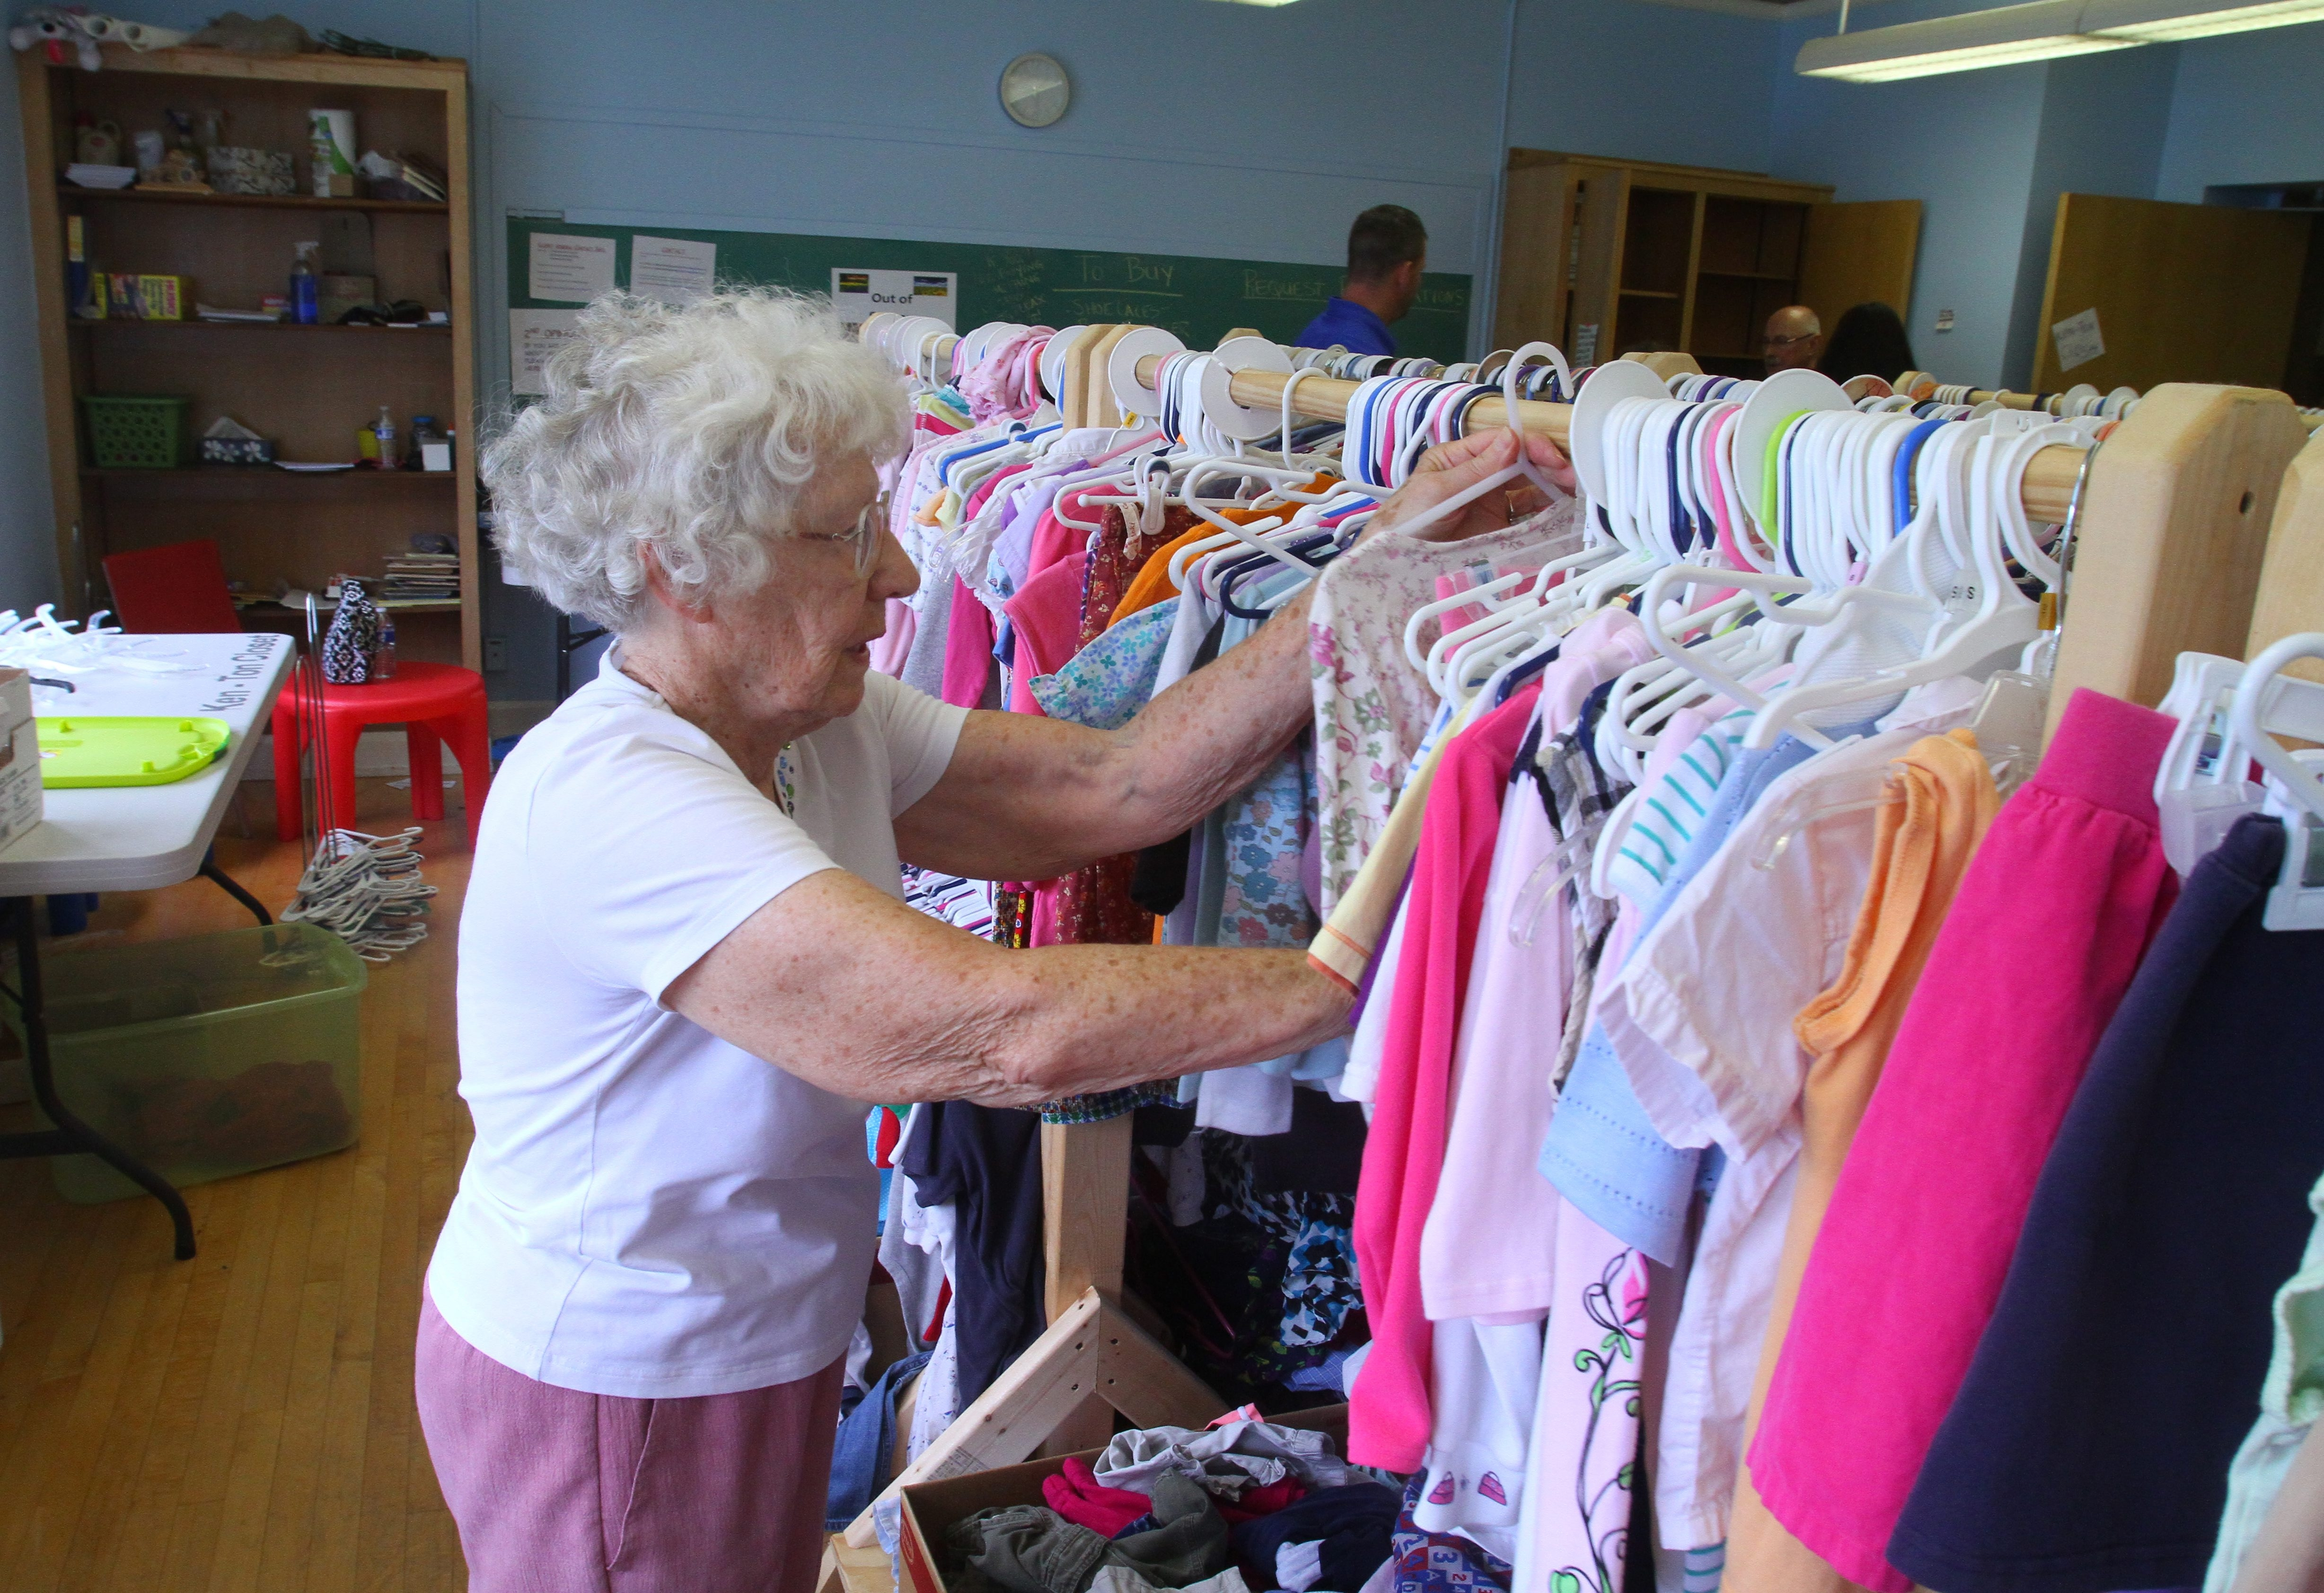 Dorothy Smatresk, a volunteer at the Ken-Ton Closet, organizes clothing at the Town of Tonawanda center Friday. Thieves stole hundreds of dollars worth of donated school supplies last week, but generous donors have more than made up for what was taken.